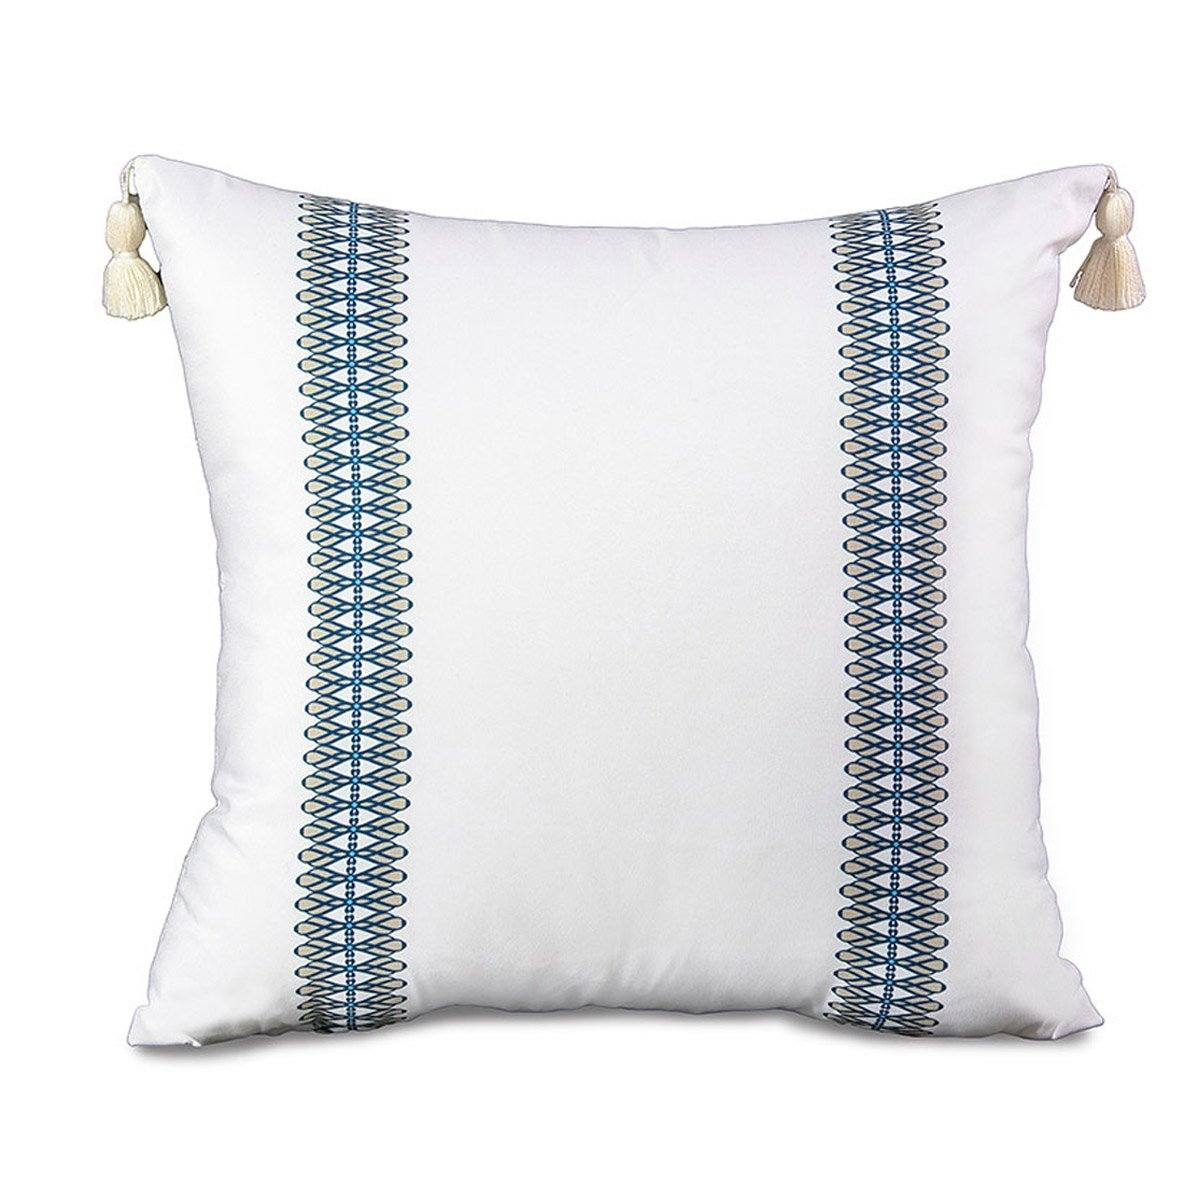 Throw Pillow - MacKenzie Shop All,Last Call SALE,Bedding Collections Springs